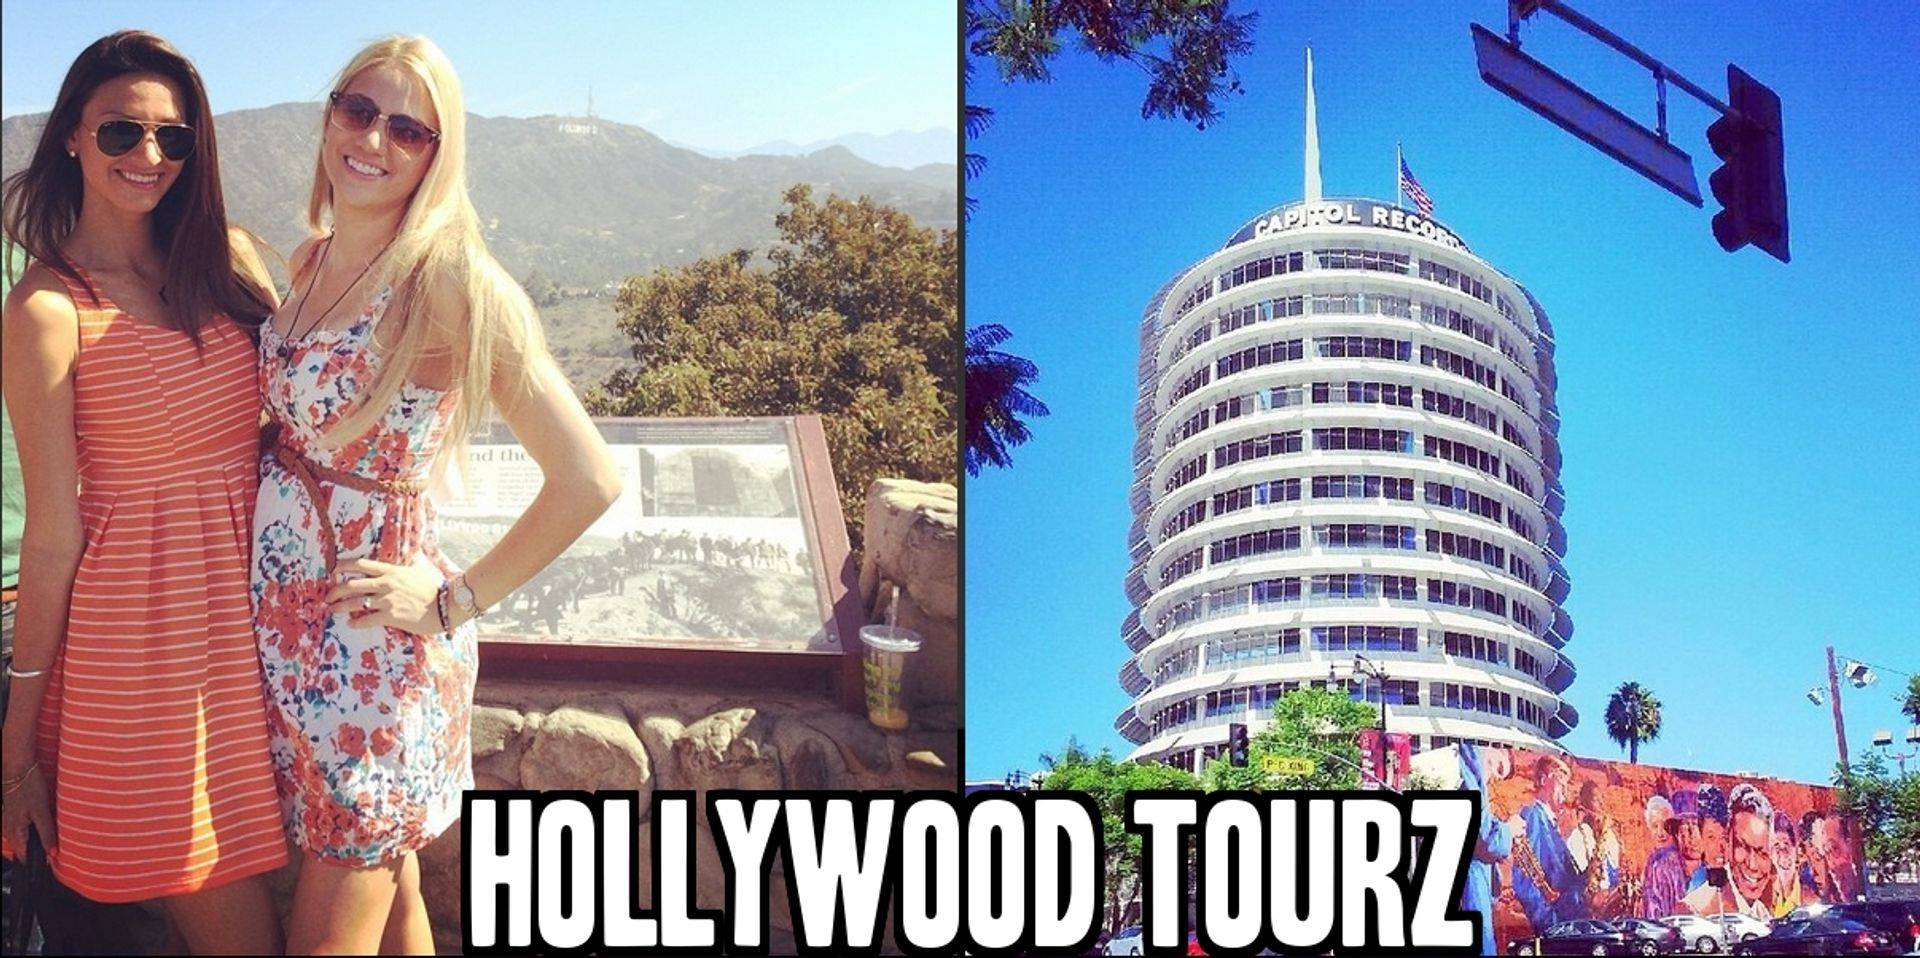 Hollywood Tourz Sightseeing bus and bike Tours in Los Angeles, California